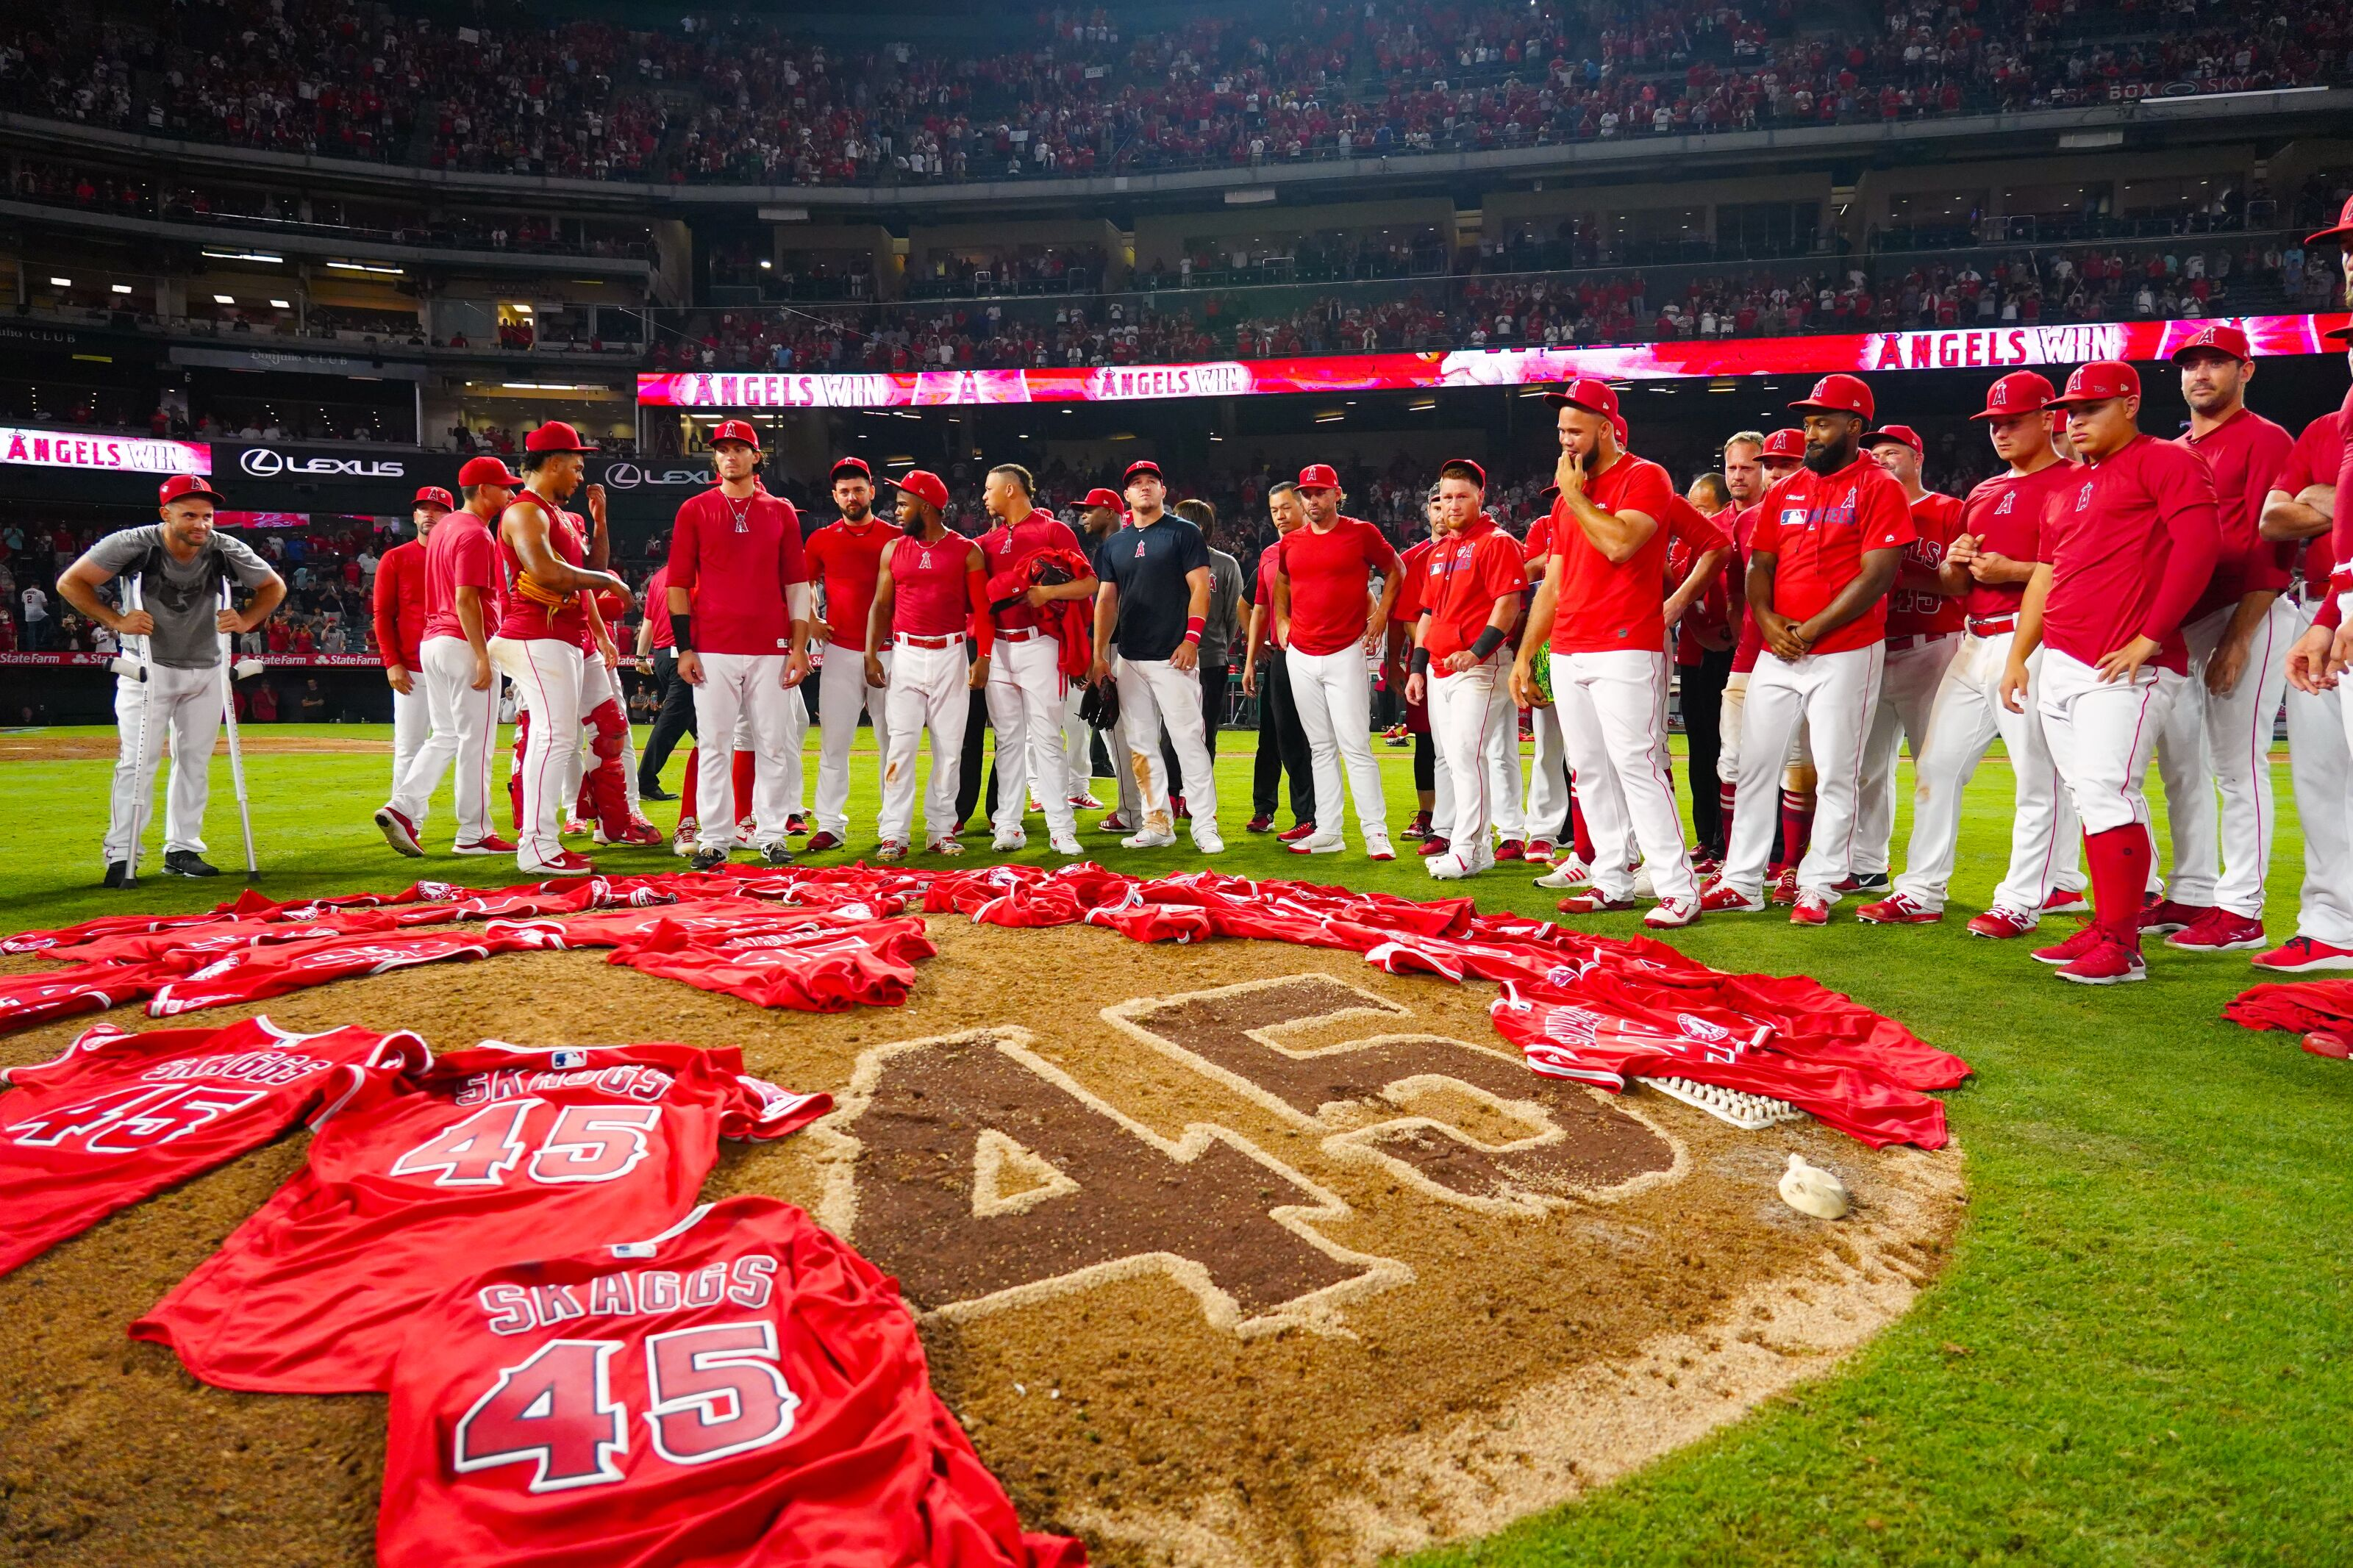 Los Angeles Angels: Three Ways Tyler Skaggs Touched No-Hitter